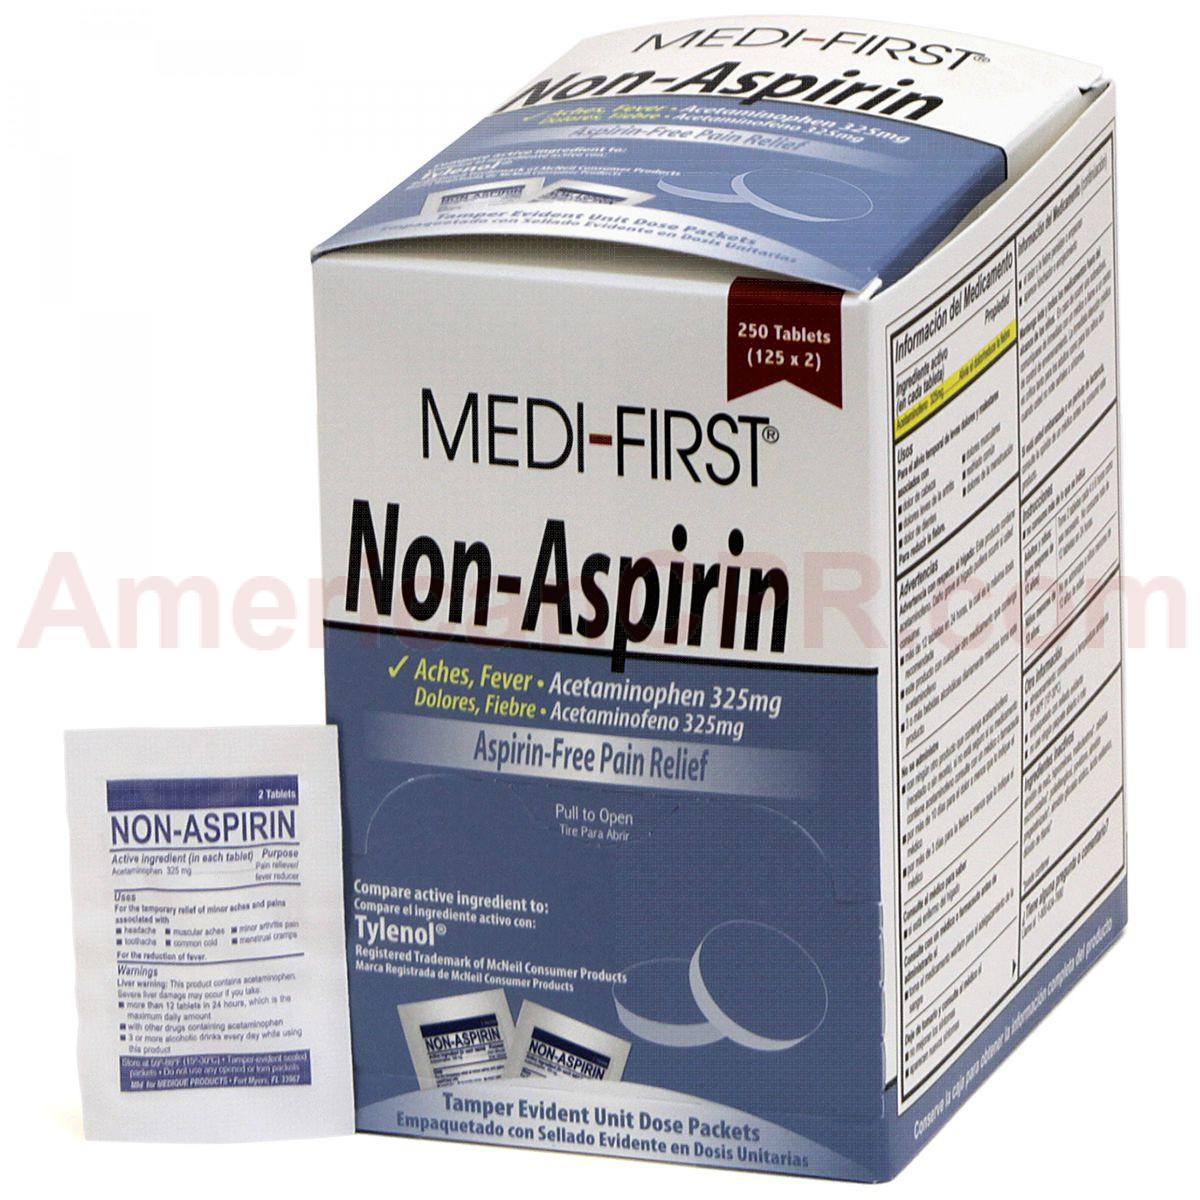 Non-Aspirin, 250/box, Medi-First